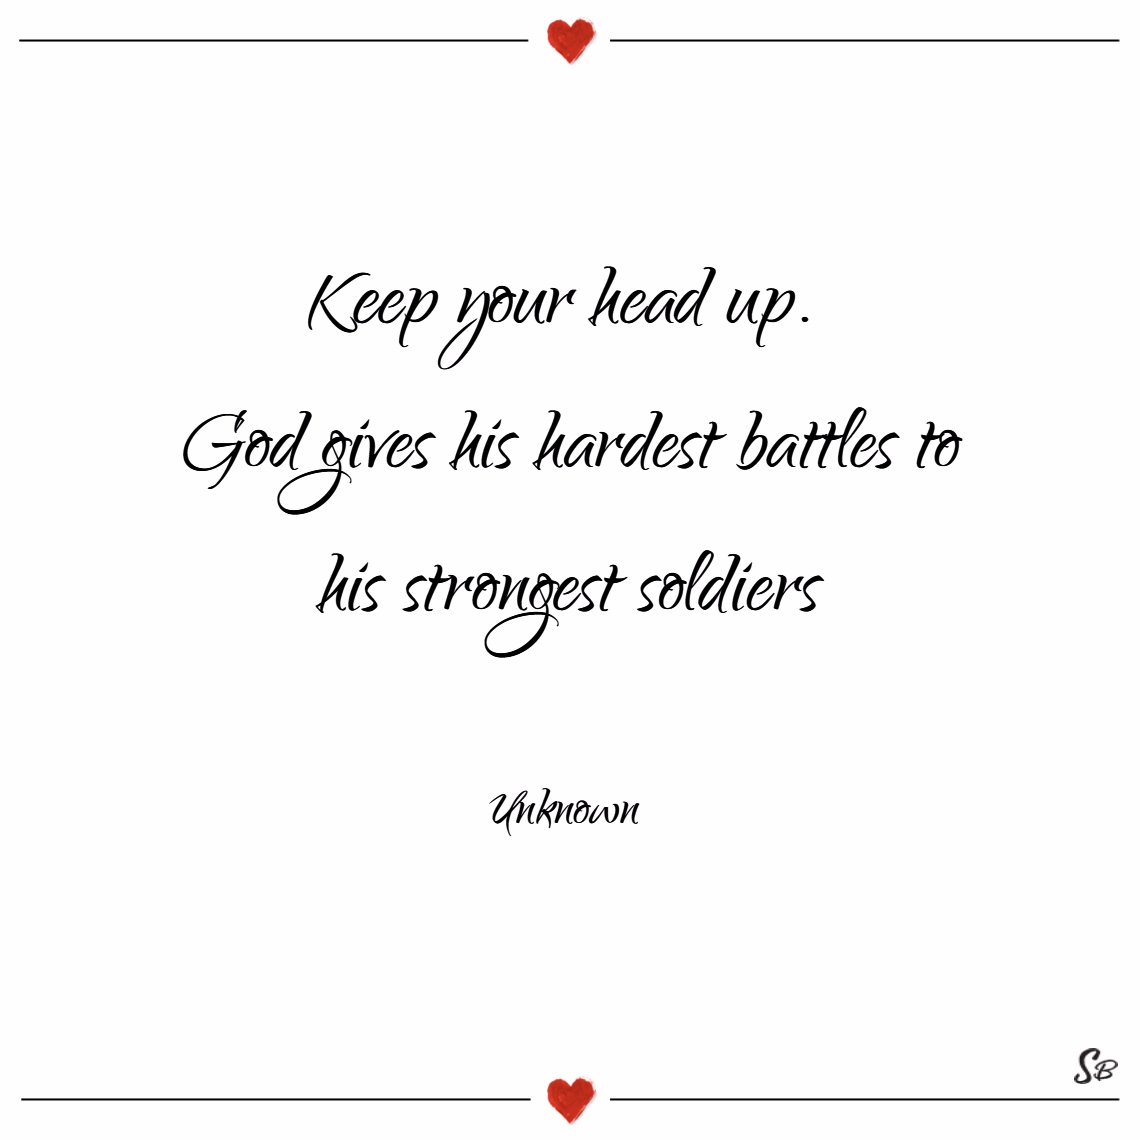 Keep-your-head-up.-God-gives-his-hardest-battles-to-his-strongest-soldiers.-–-Unknown.png